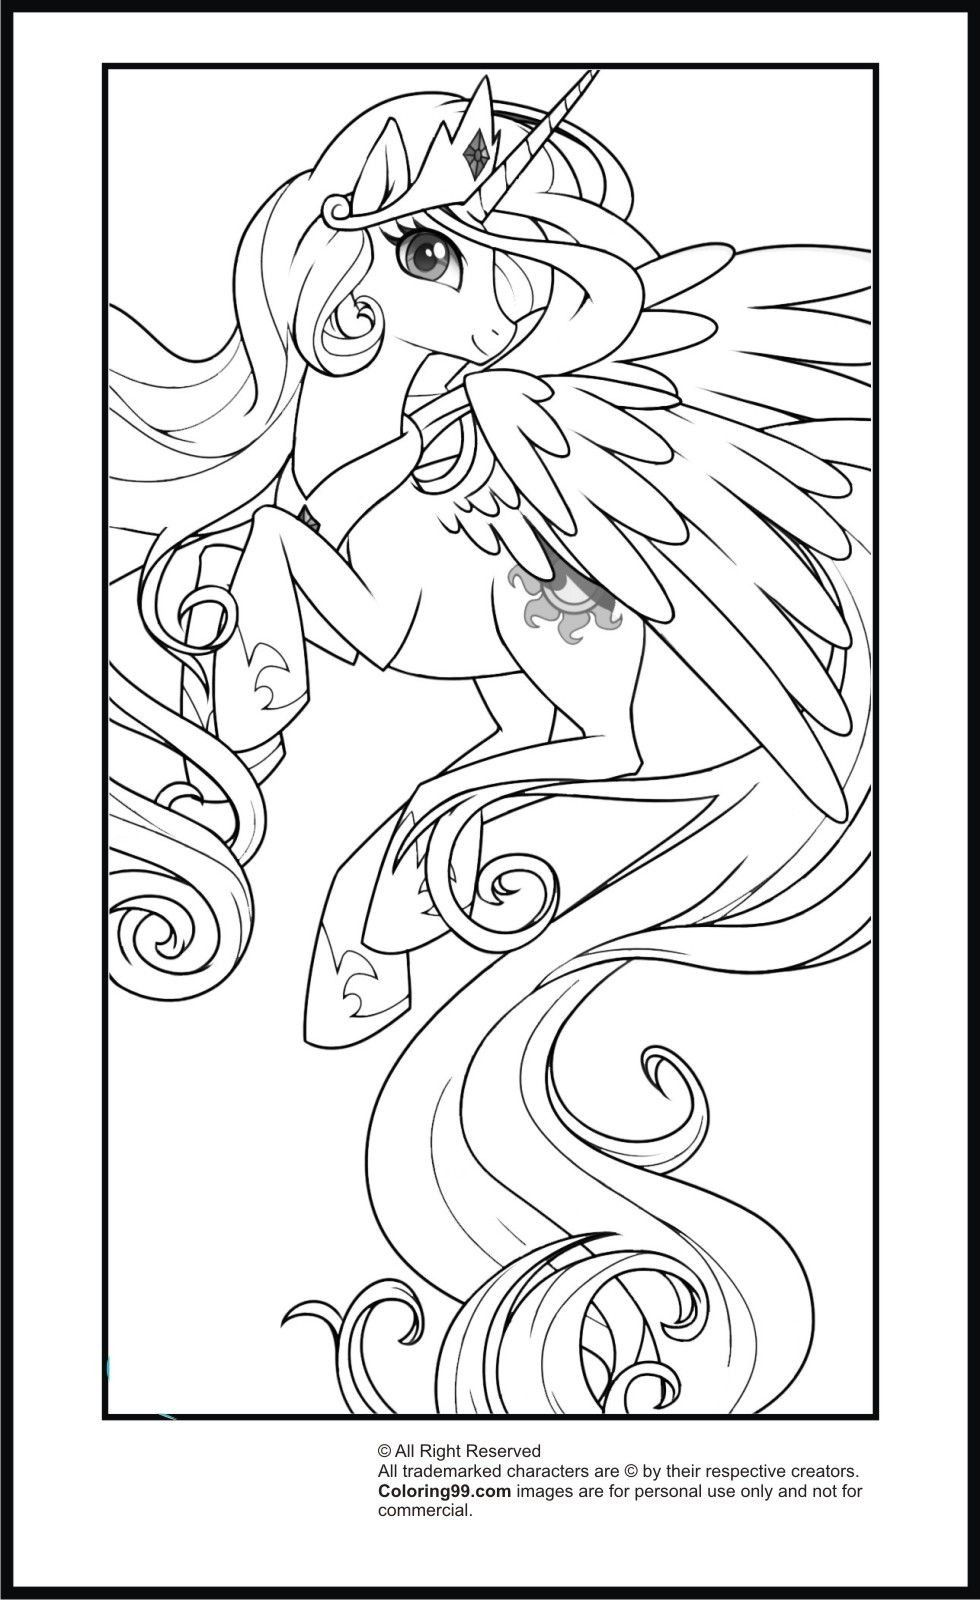 My Little Pony Princess Celestia Coloring Page Youngandtae Com In 2020 My Little Pony Coloring My Little Pony Princess Princess Coloring Pages